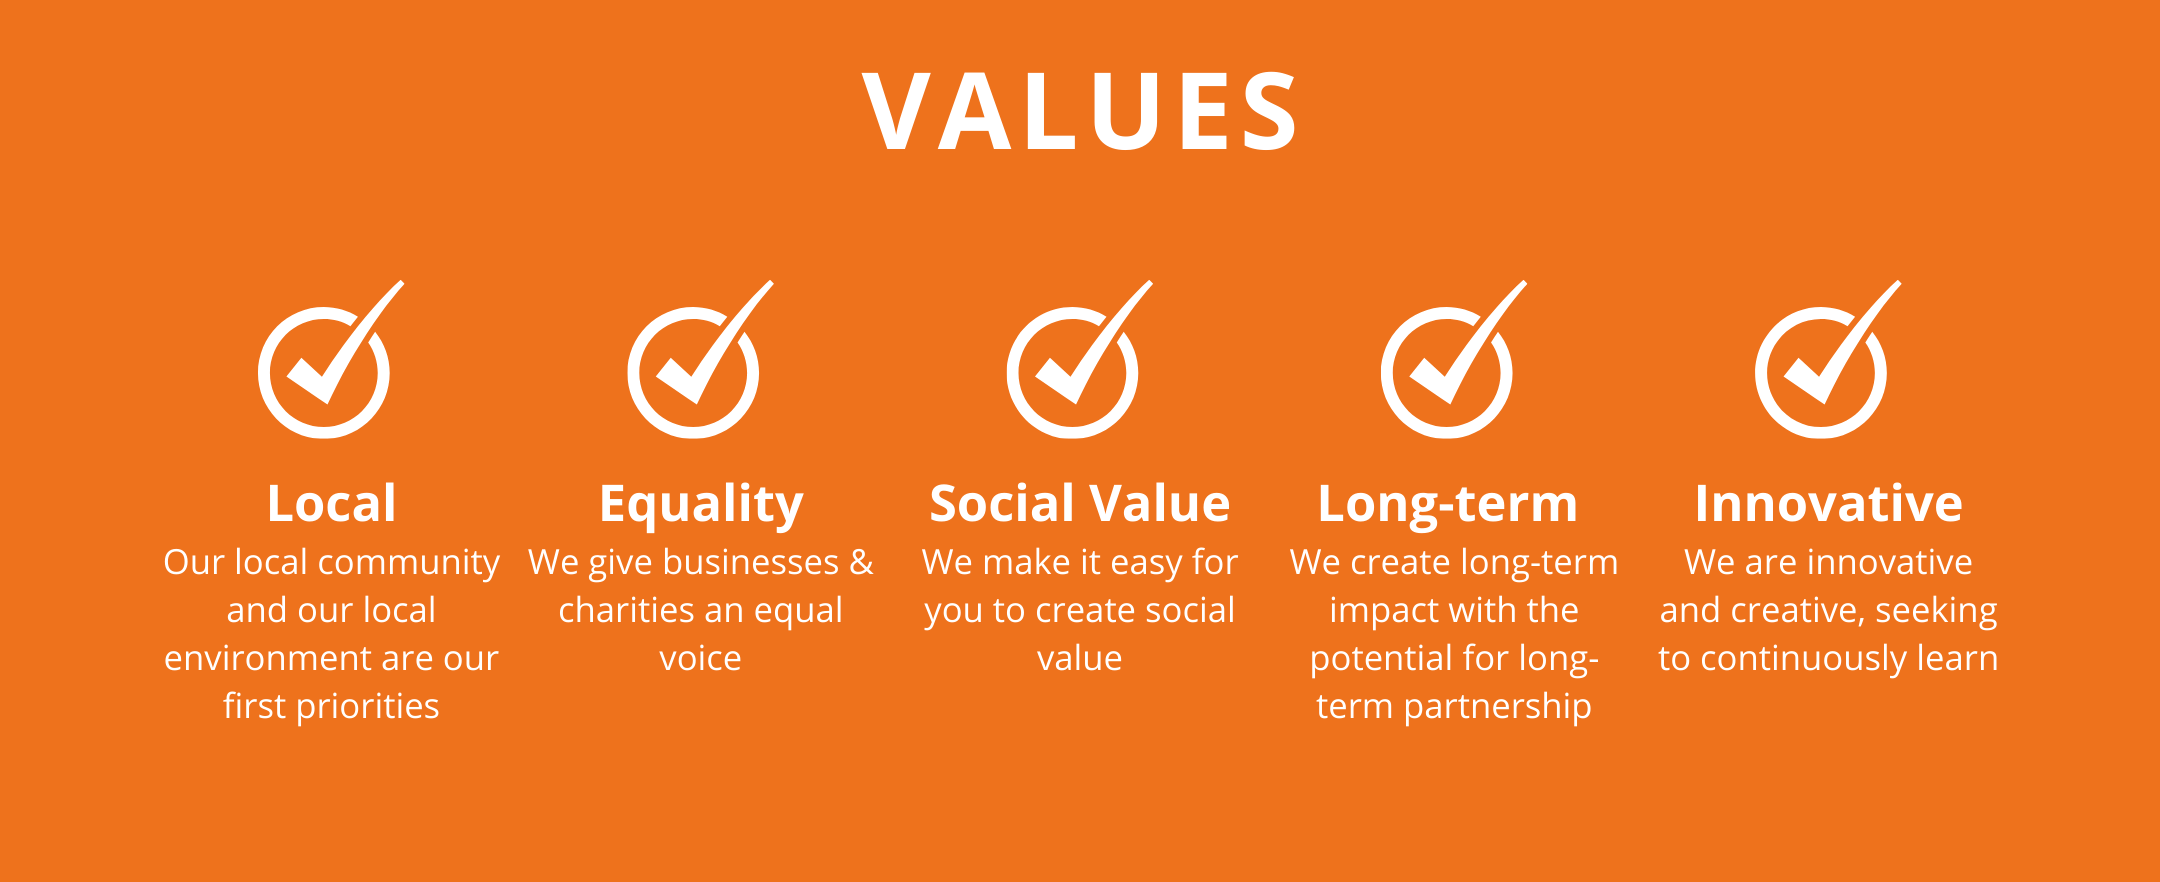 VALUES: Local, Our local community and our local environment are our first priorities. Equality, We give businesses & charities an equal voice. Social Value, We make it easy for you to create social value. Long-term, We create long-term impact with the potential for long-term partnership. Innovative, We are innovative and creative, seeking to continuously learn.